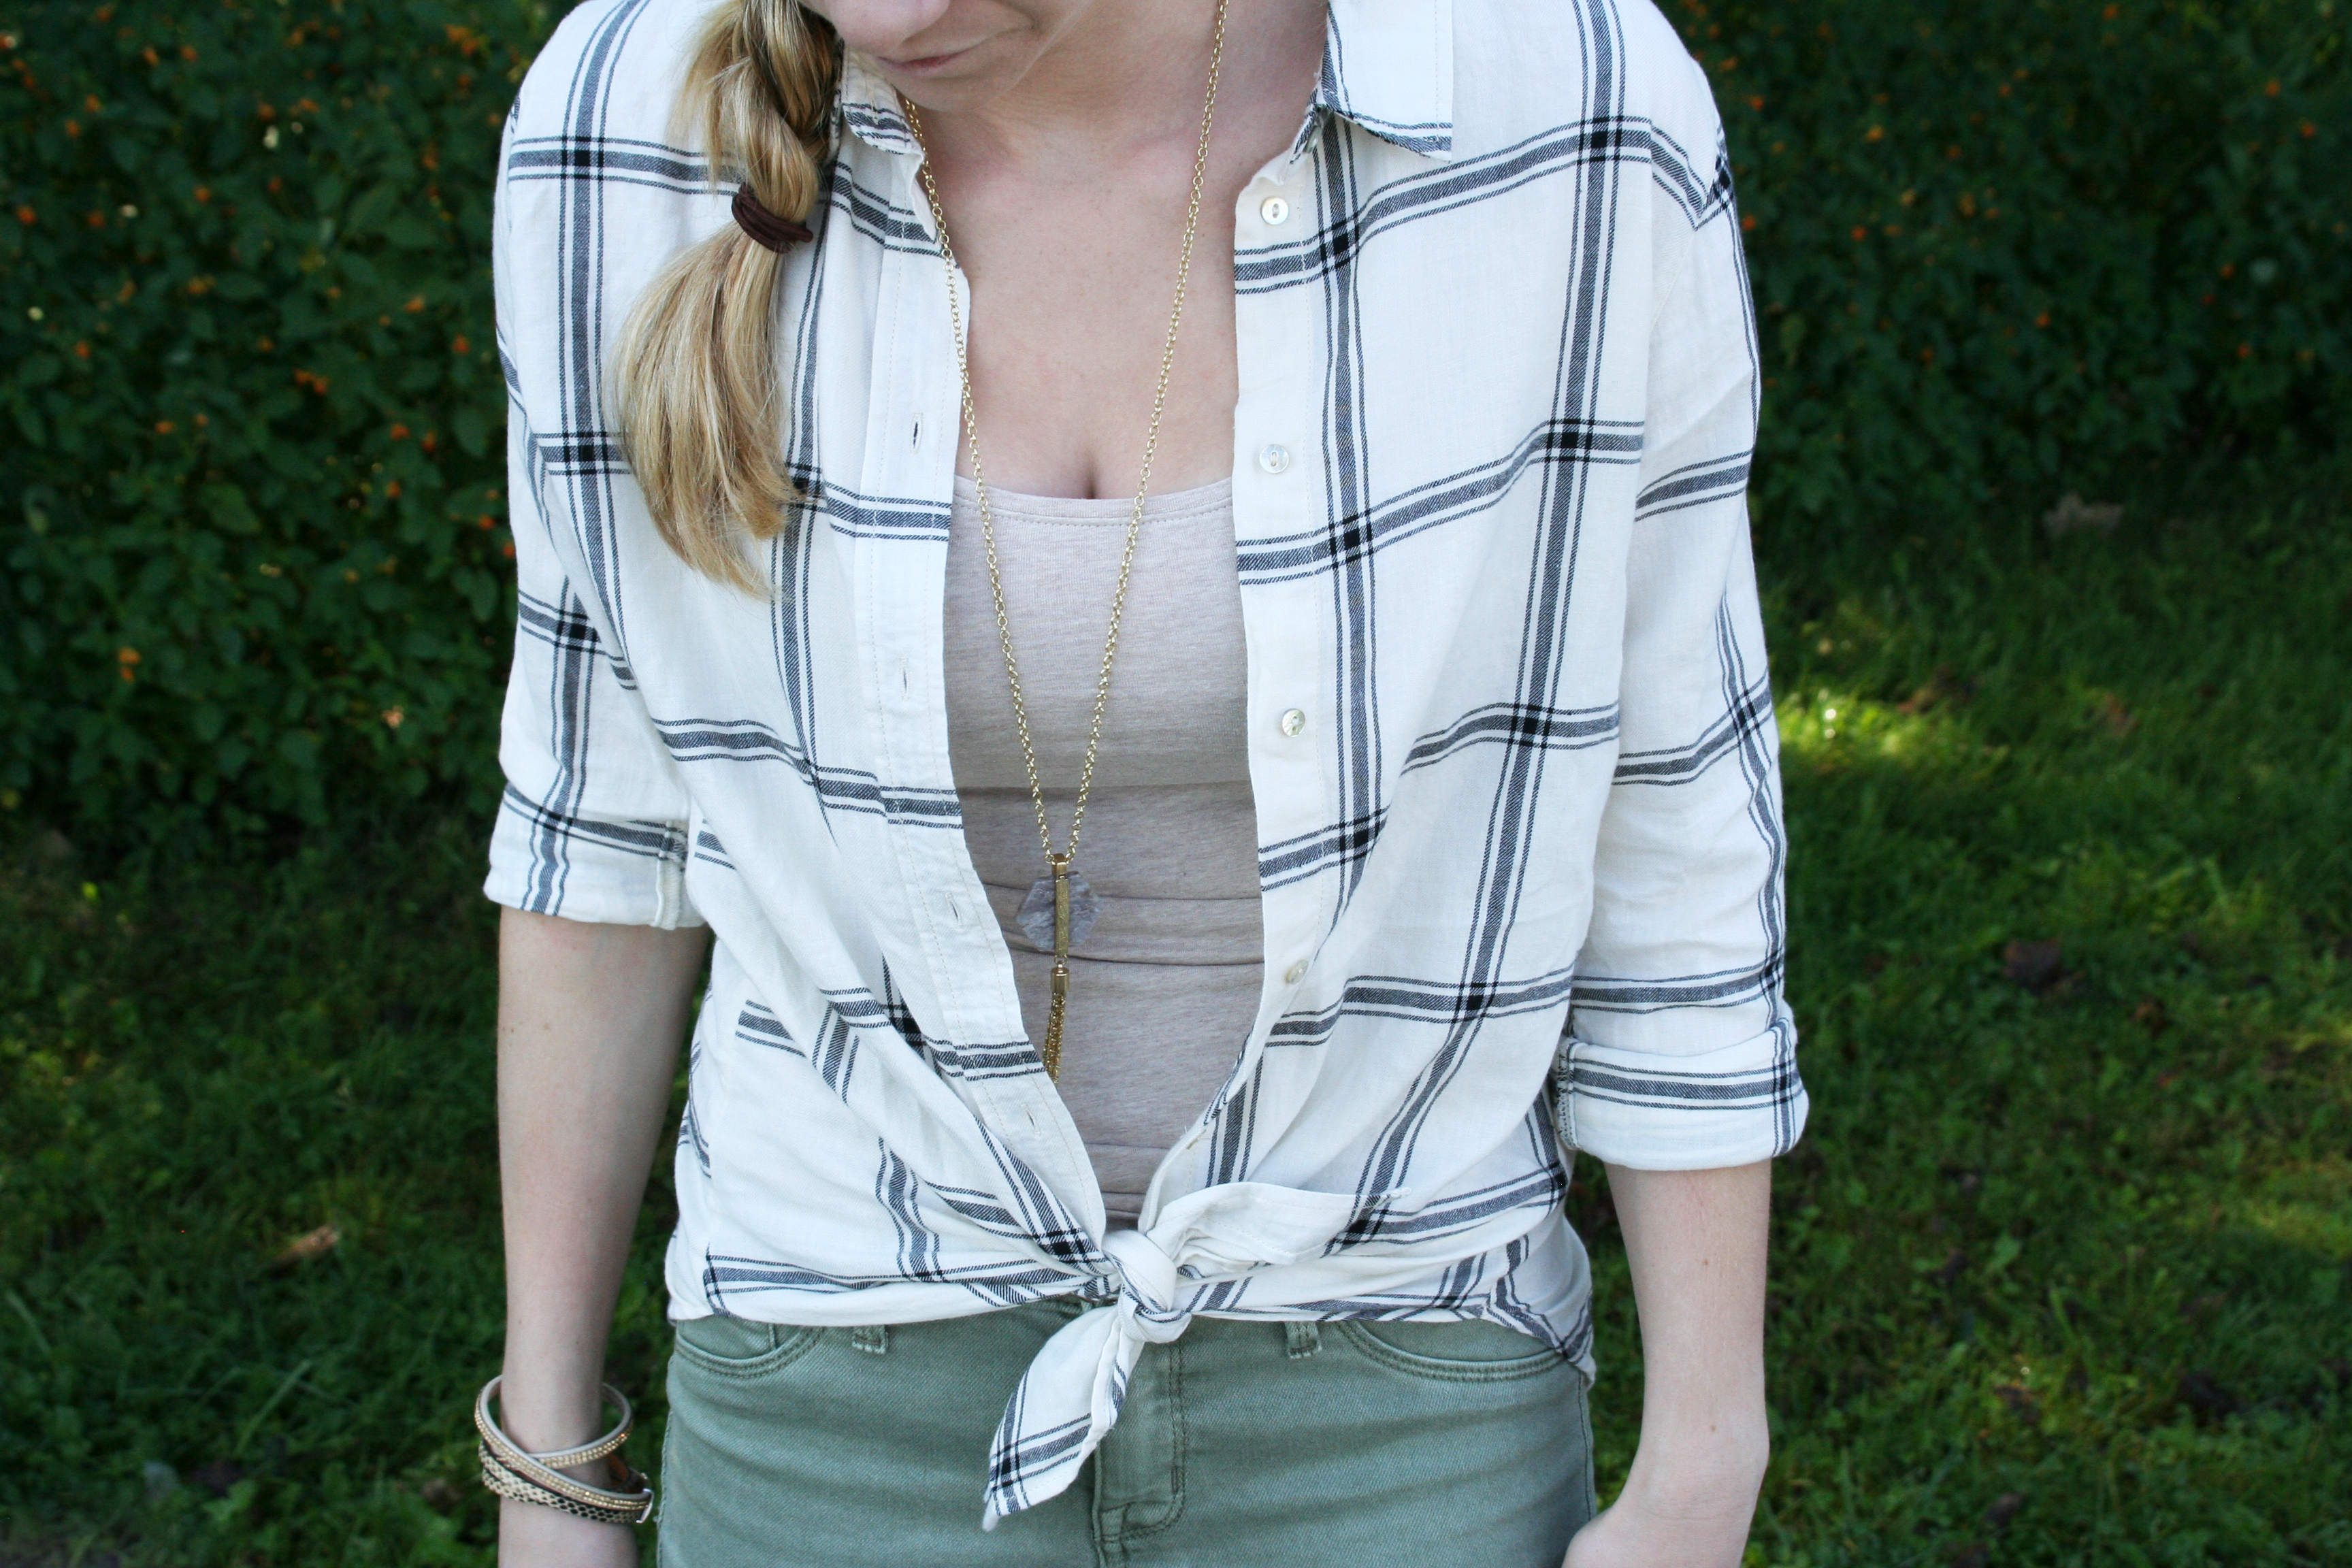 green-pants-and-stripes-cloes-up-2